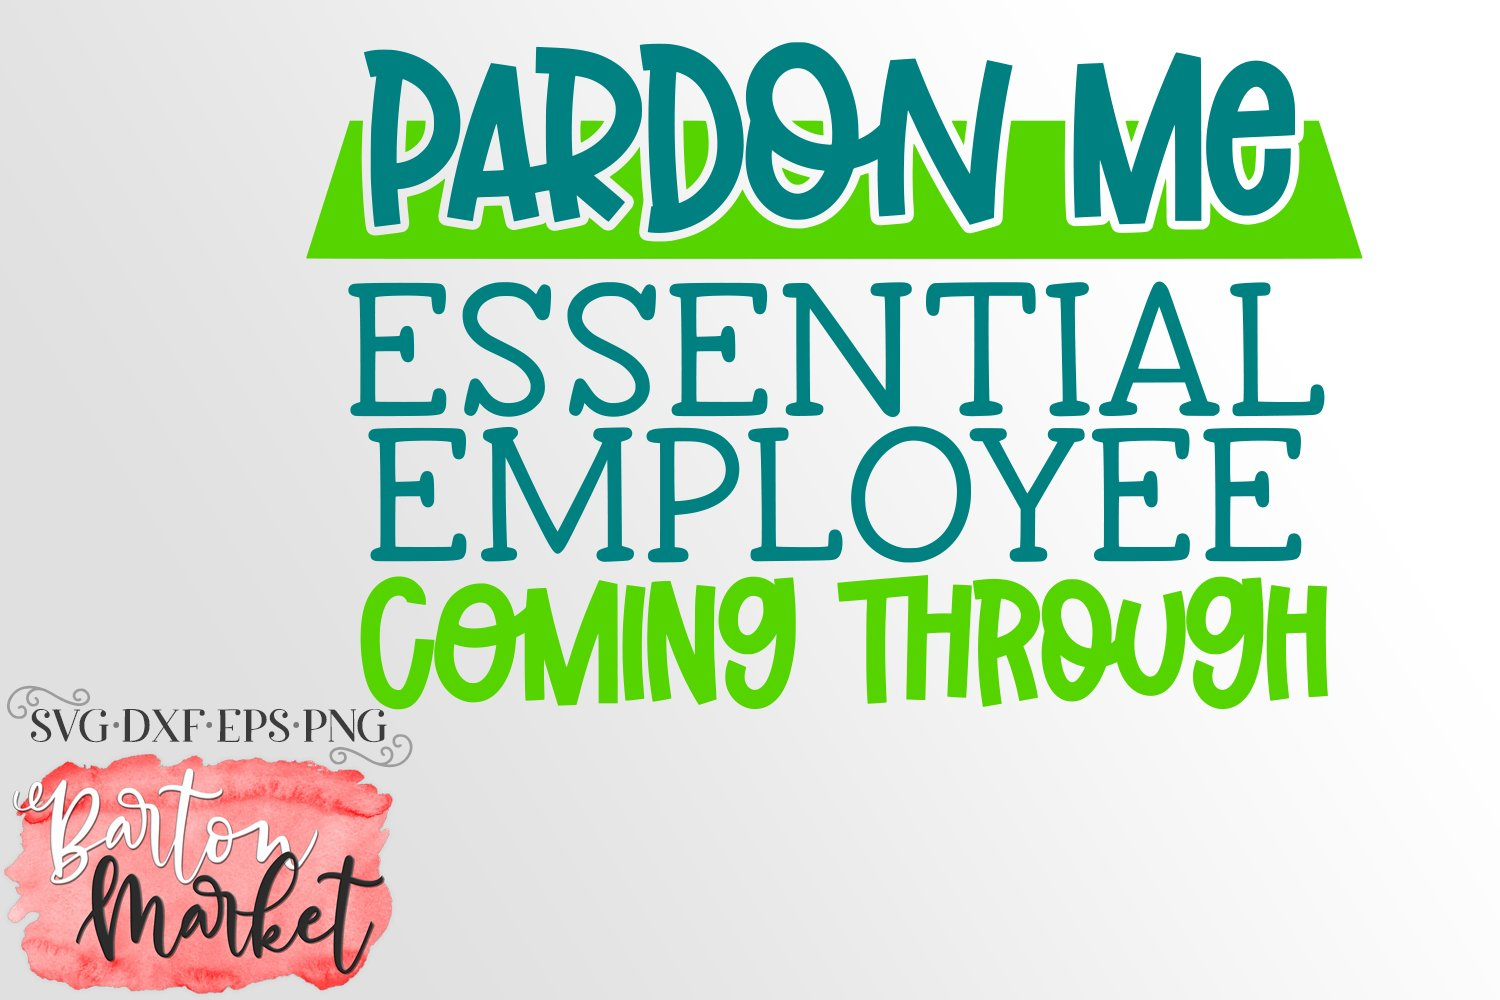 Pardon Me Essential Employee Coming Through SVG DXF EPS PNG example image 2